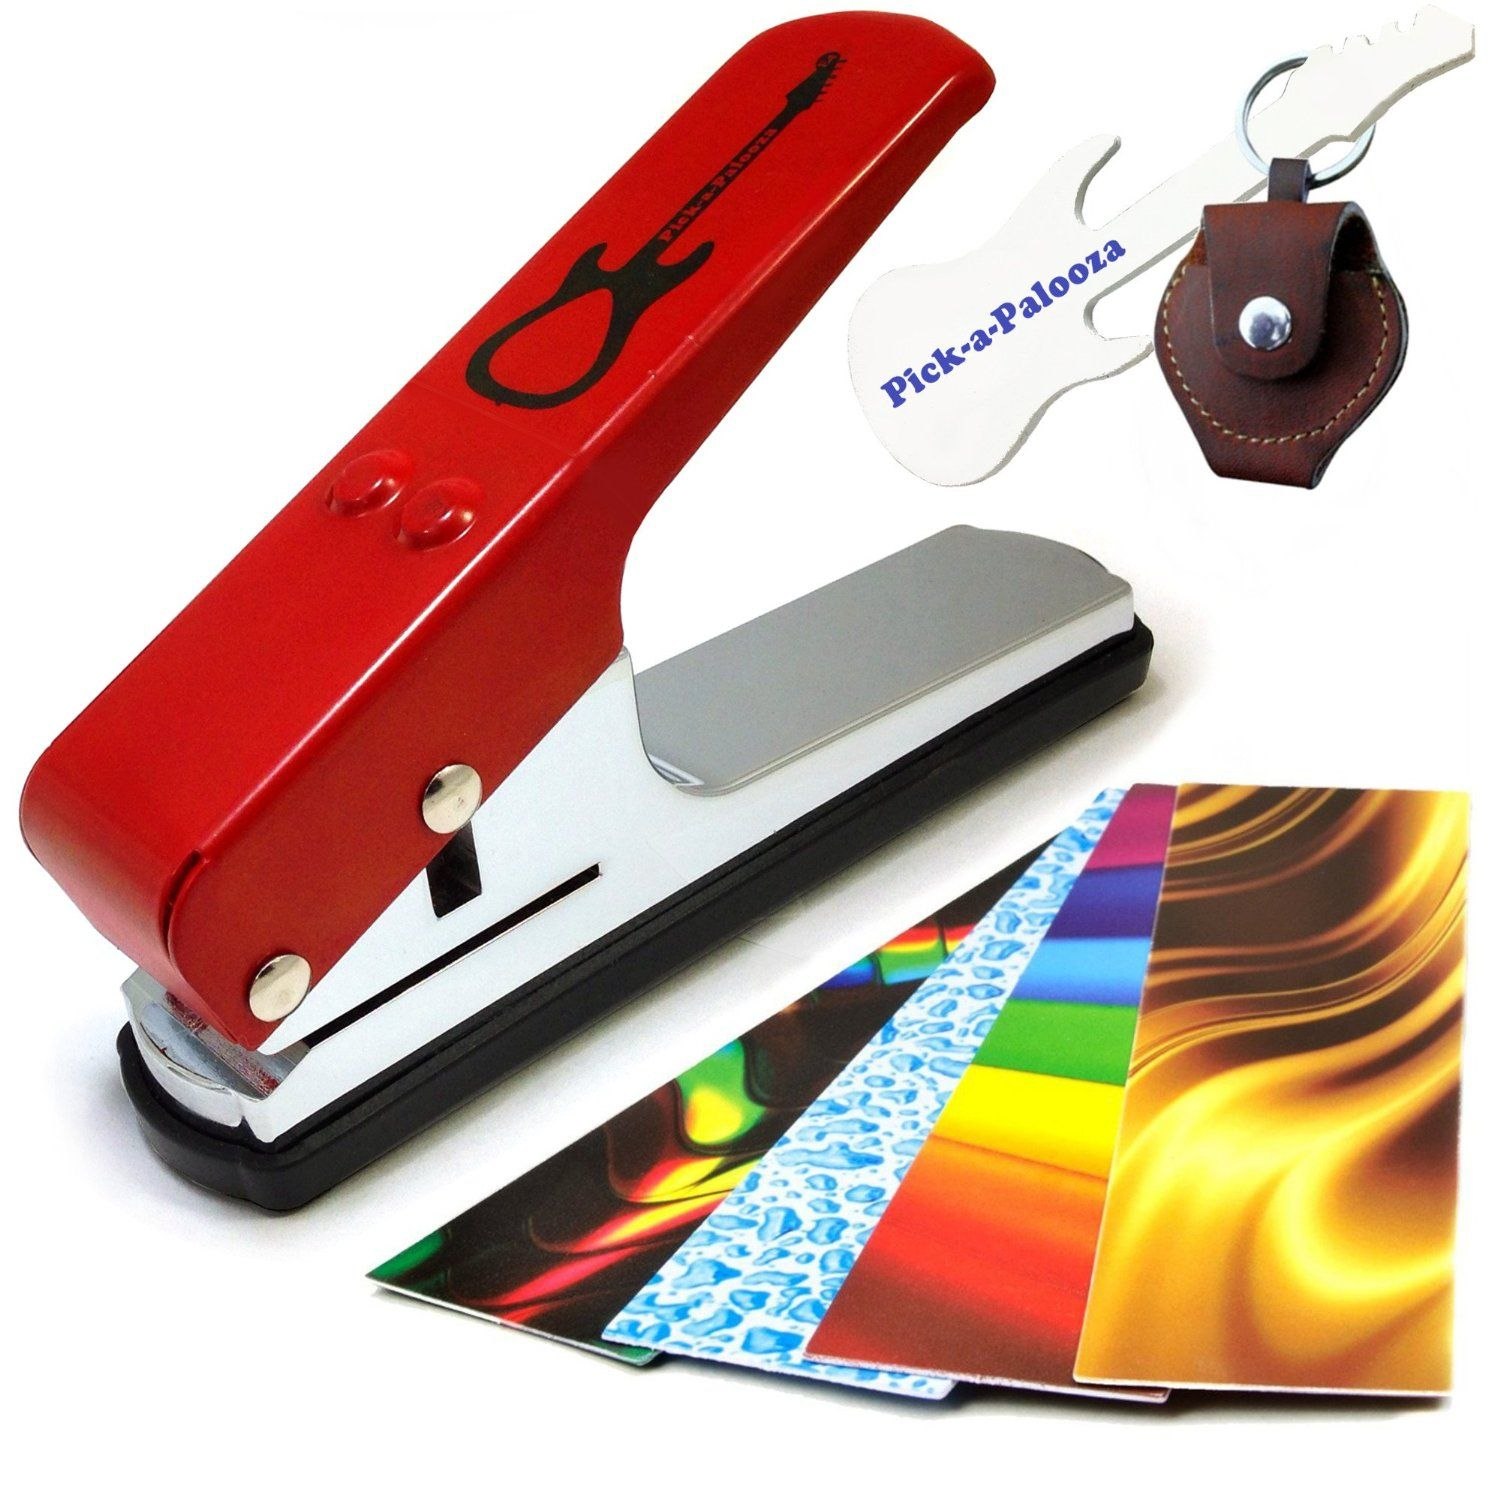 Amazon.com: Pick-a-Palooza® DIY Guitar Pick Punch - The Premium Guitar Pick Maker and a Leather Key Chain Pick Holder - Now You Can Make Your Own Guitar Picks - RED: Musical Instruments